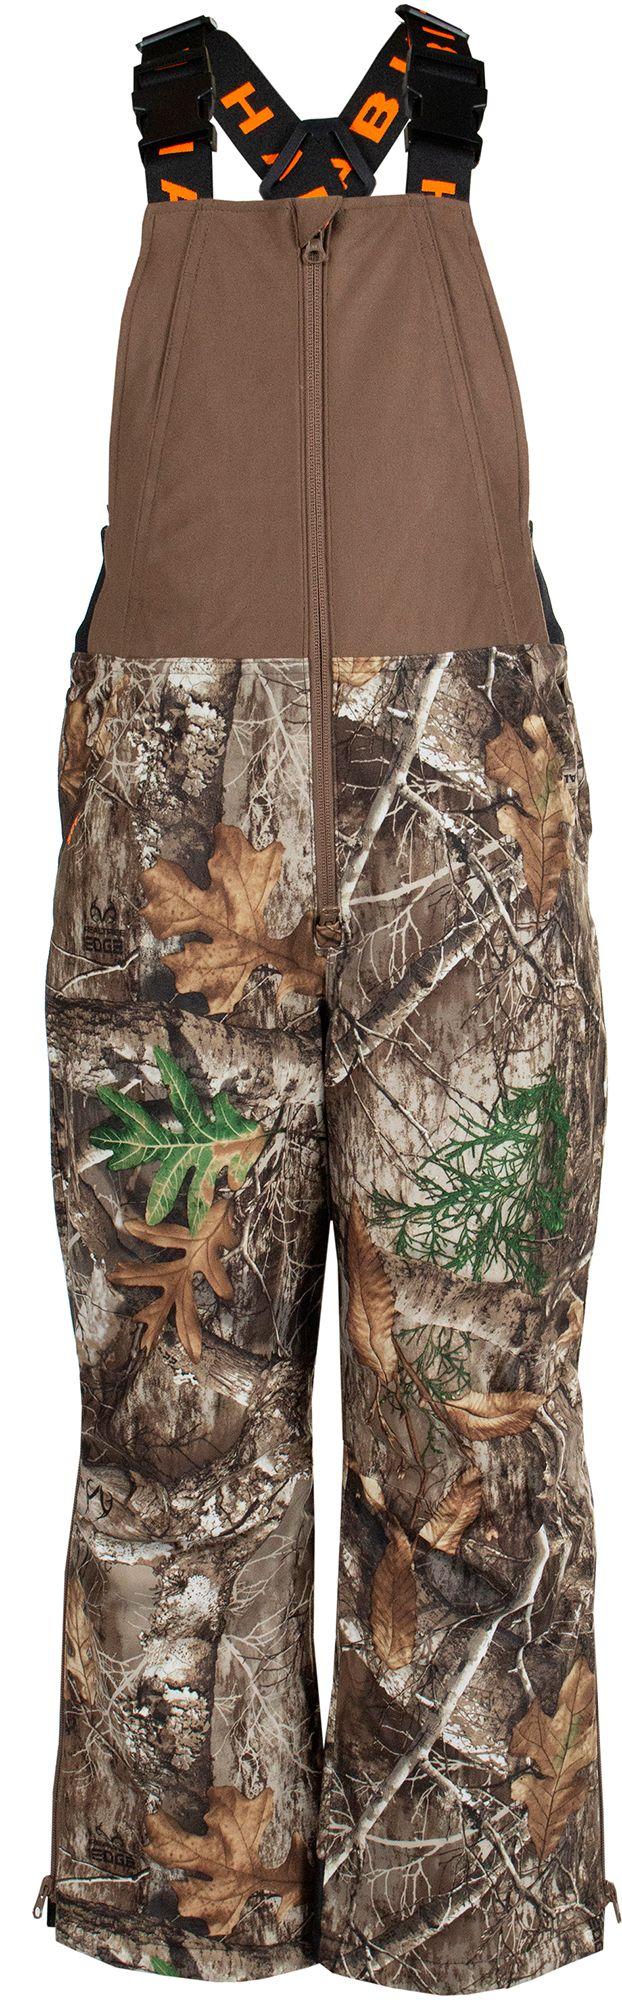 Habit Youth Cedar Branch Insulated Waterproof Hunting Bib, Kids, YS, Multi thumbnail